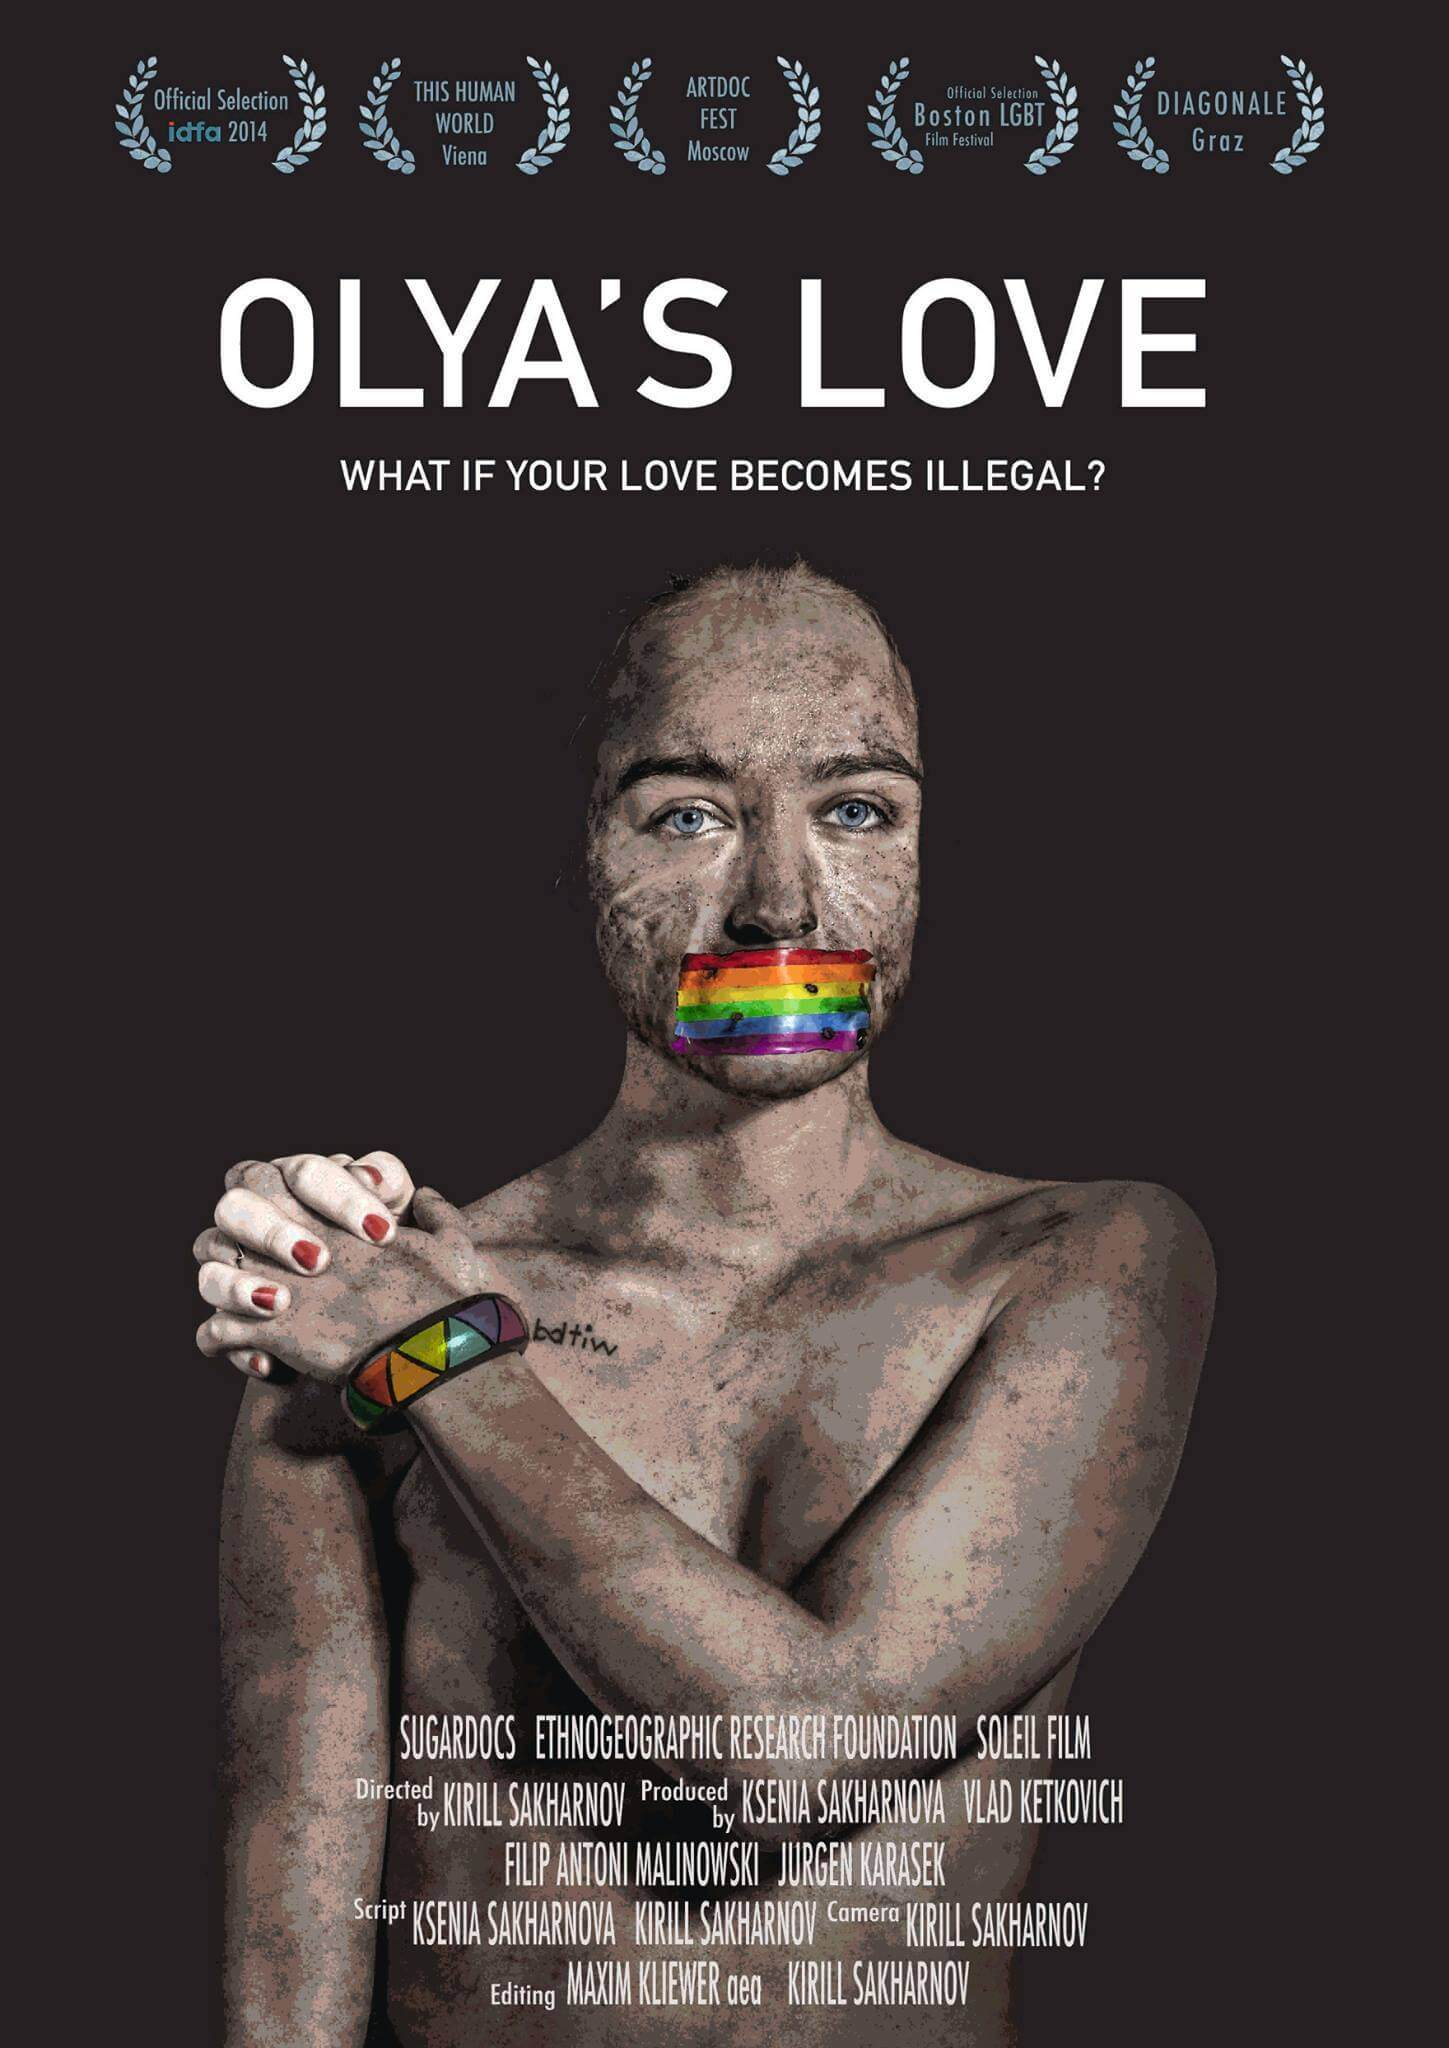 Olya's Love     Olya's Love  is a documentary that follows a young Russian lesbian couple. Olya is a strong member of the Russian LGBT activist community, but her partner...  Read More